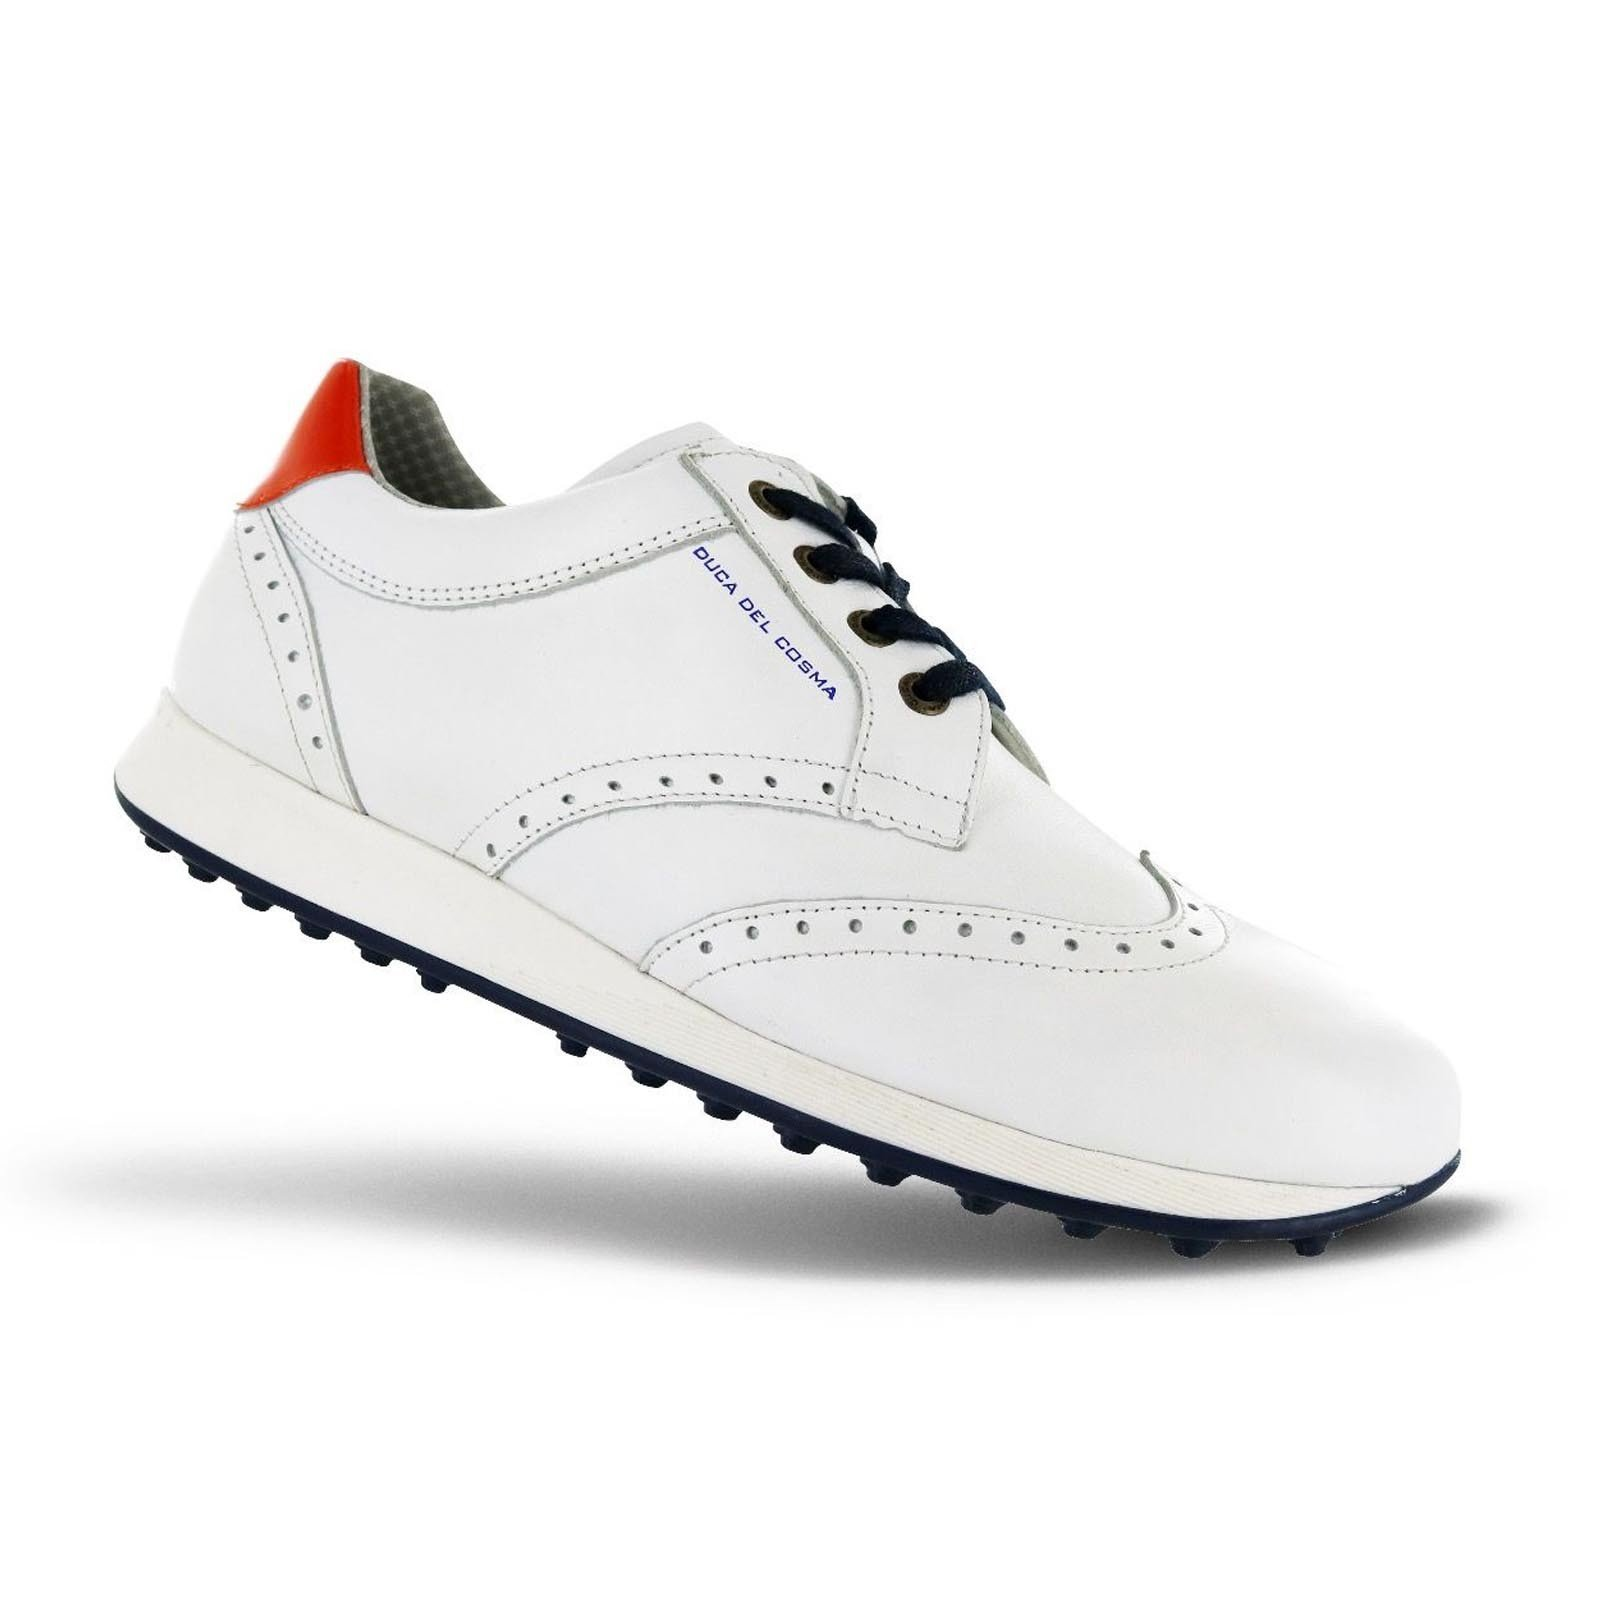 Duca del Cosma La Spezia II Golf Shoes